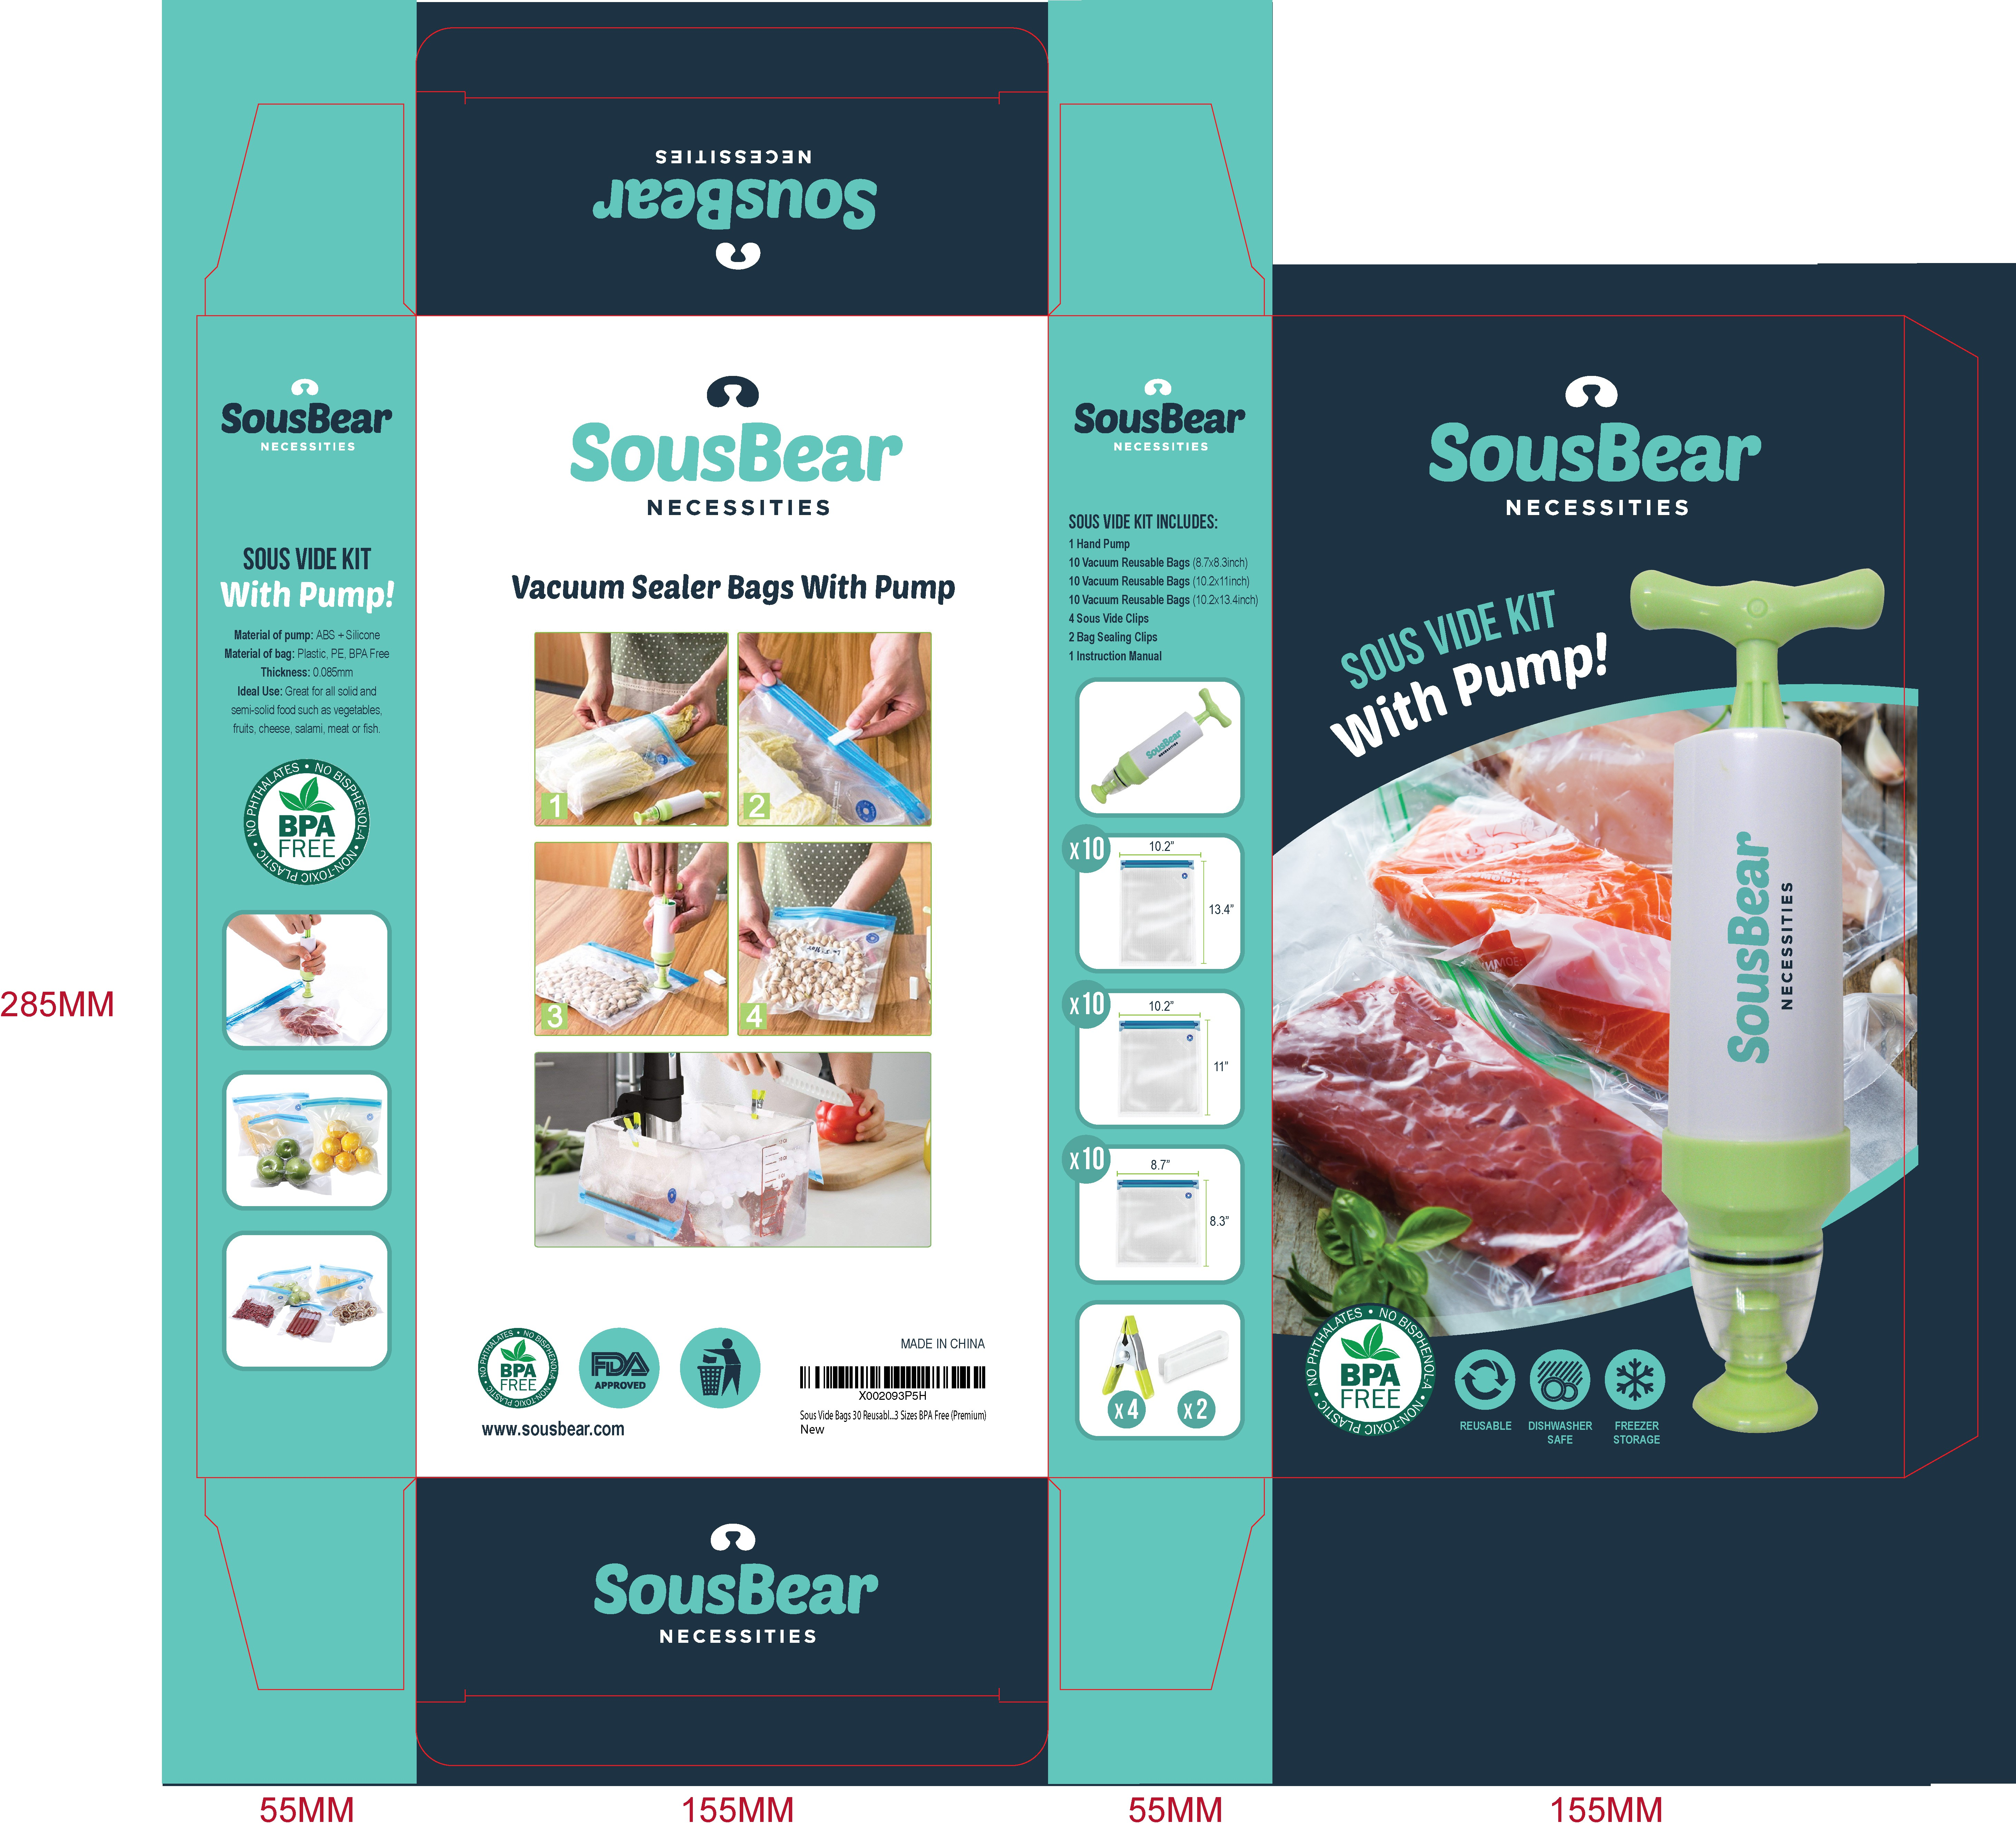 Packaging for a Sous vide Kit, cooking supplies.